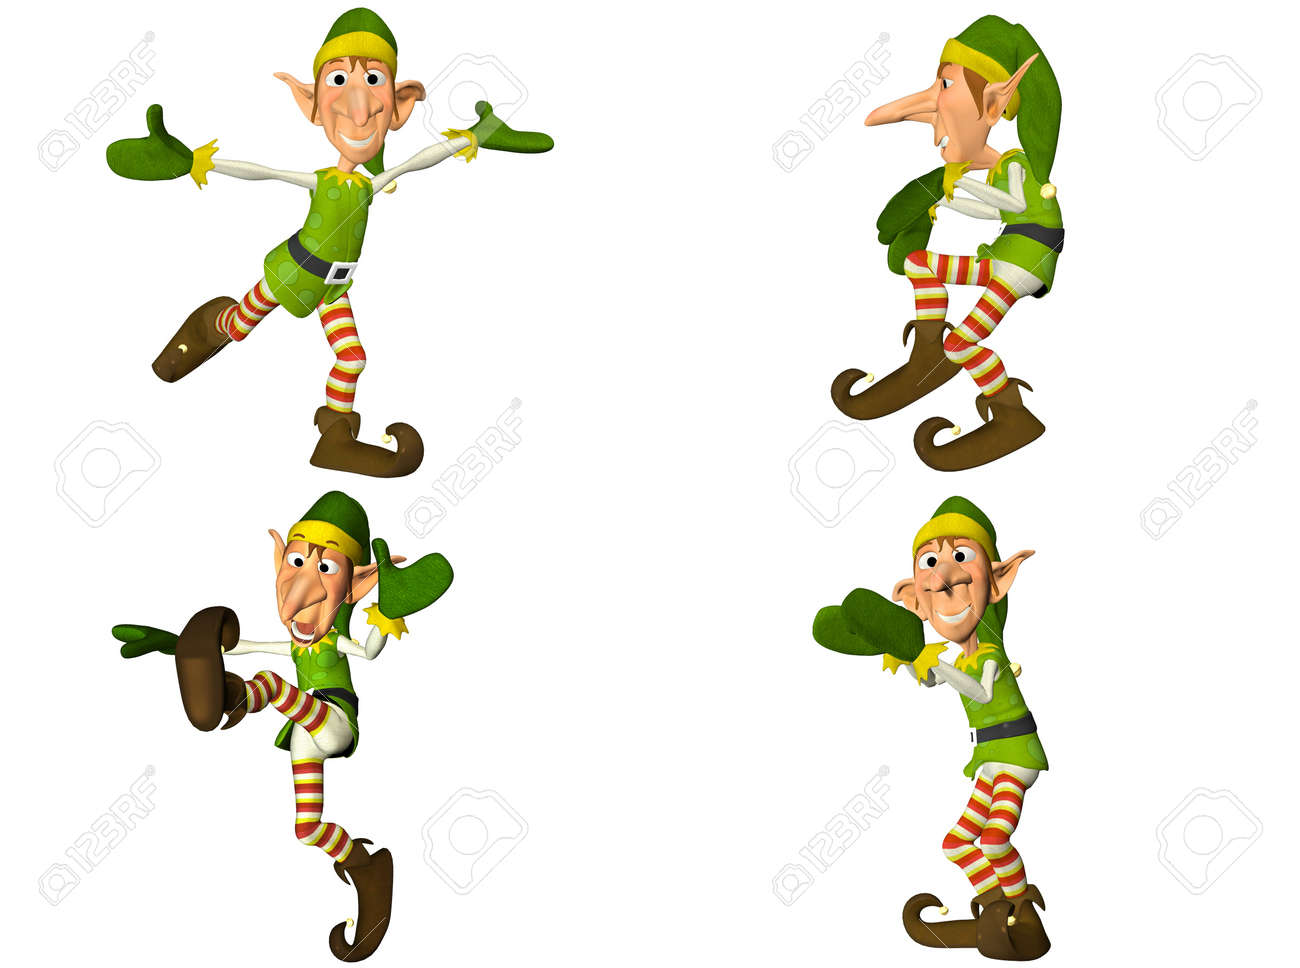 Illustration of a pack of four  4  christmas elves with different poses and expressions isolated on a white background - 2of2 Stock Photo - 13641120